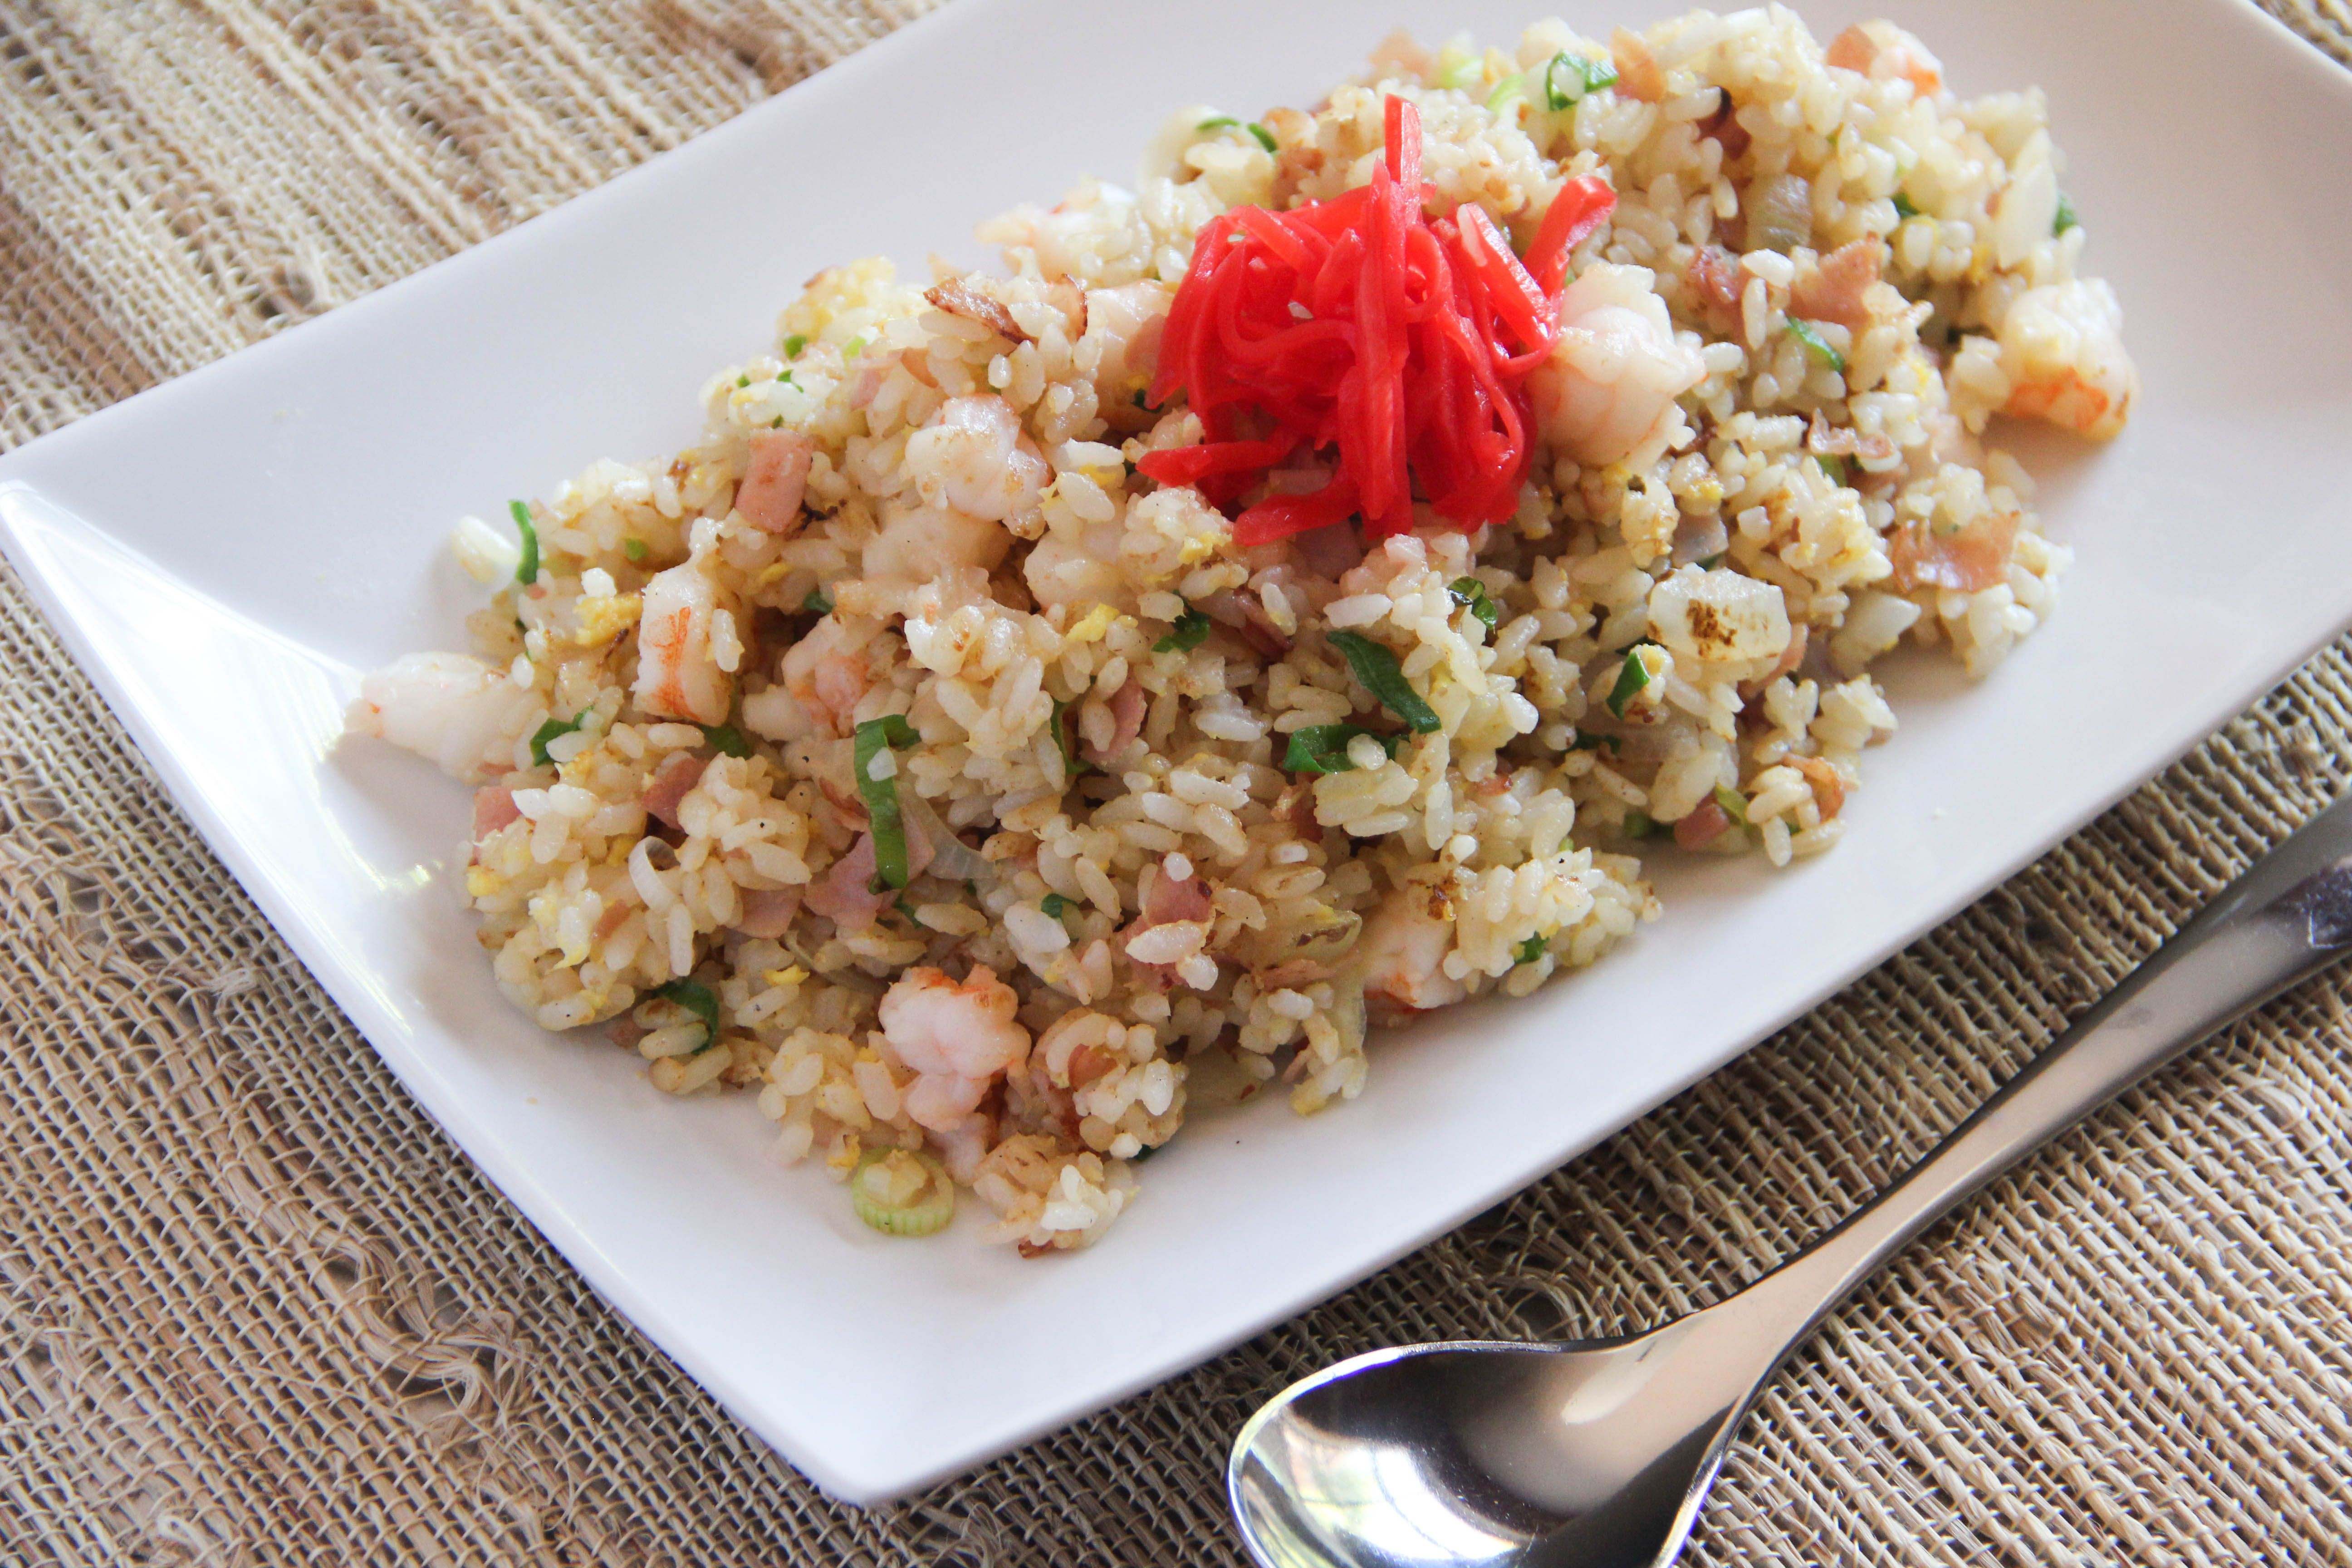 <p>Yakimeshi is Japanese fried rice with egg, meat, and vegetables.  Yakimeshi is something your mom makes from left over rice and ingredients she already has in the house.  Other than rice and egg, there are no particular ingredients you need to use.  Yakimeshi is quick and easy and also a